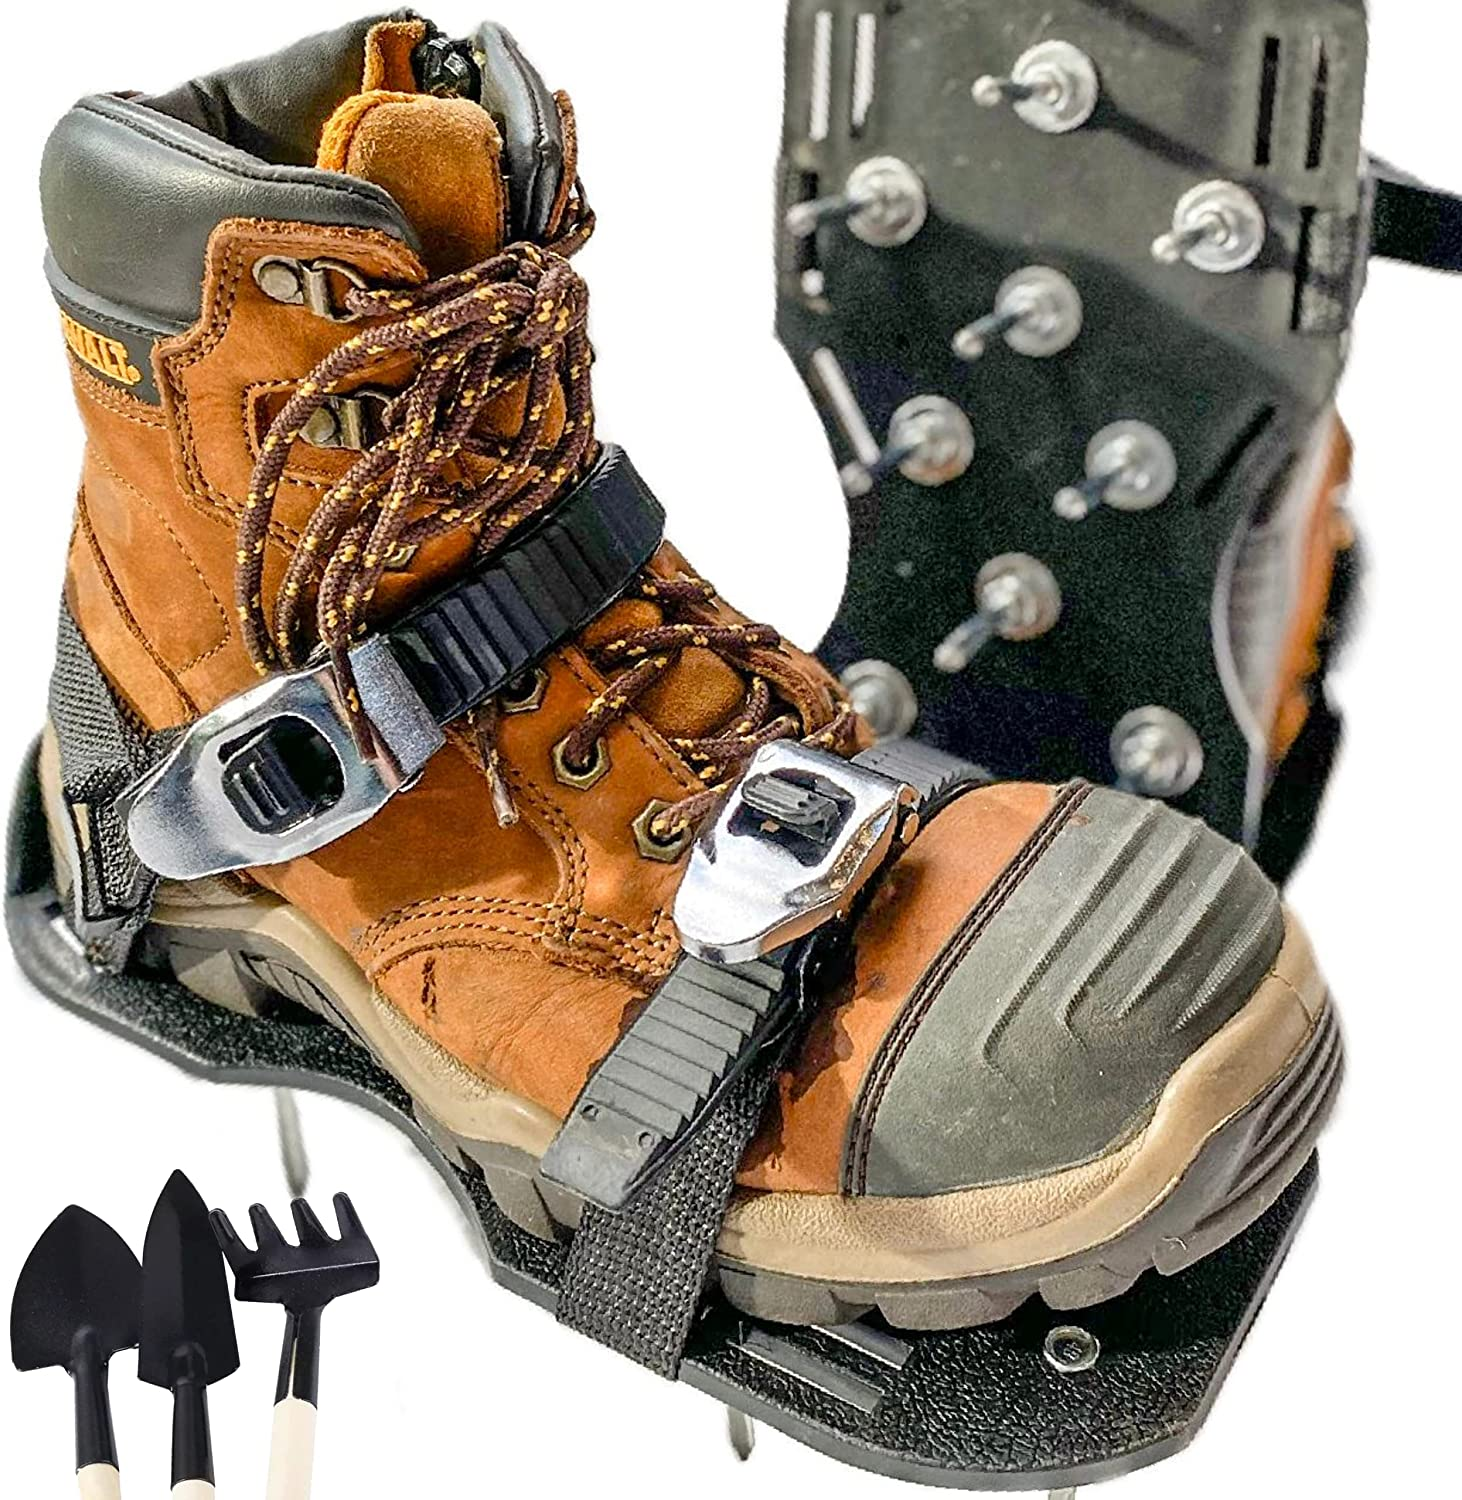 half Montville 25% OFF Garden Lawn Aerator Shoes Magic with R Self-Tightening